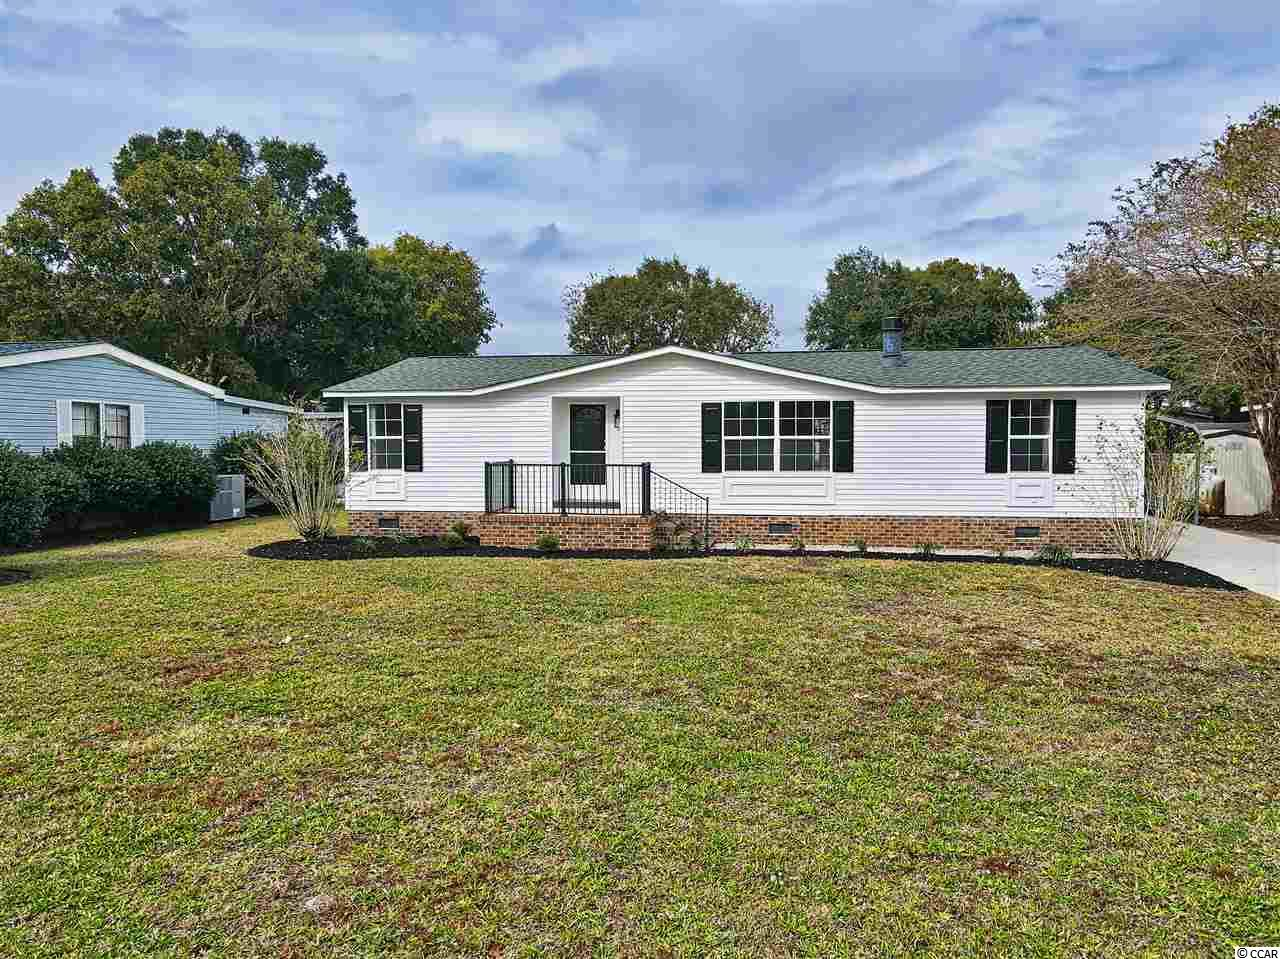 Wonderfully fully renovated home in the highly sought after Murrells Inlet! This is an unbelievable home, in an incredible location right next to the Waccamaw Hospital and only 5 minutes from the famous Murrells Inlet Marshwalk. Best part about it all, NO HOA! Perfect for parking your trailer, travel trailer, boats, RV, jet ski's and all the toys! There is also a shed for storage. This lovely double wide home with a brick foundation sits on a large lot with a concrete driveway that leads up to a carport. if you are looking for something completely turn-key, then look no further! Spacious kitchen with granite counter tops, new flooring and paint throughout, new stainless steel appliances, this home is like a brand new home, but at a price you can afford. Plenty of parking, including a carport, and an over sized screened in patio that also has a covered non-screed section as well. This truly is the home you have been searching for! Call the list agent or your realtor today to schedule a showing before this one is gone!